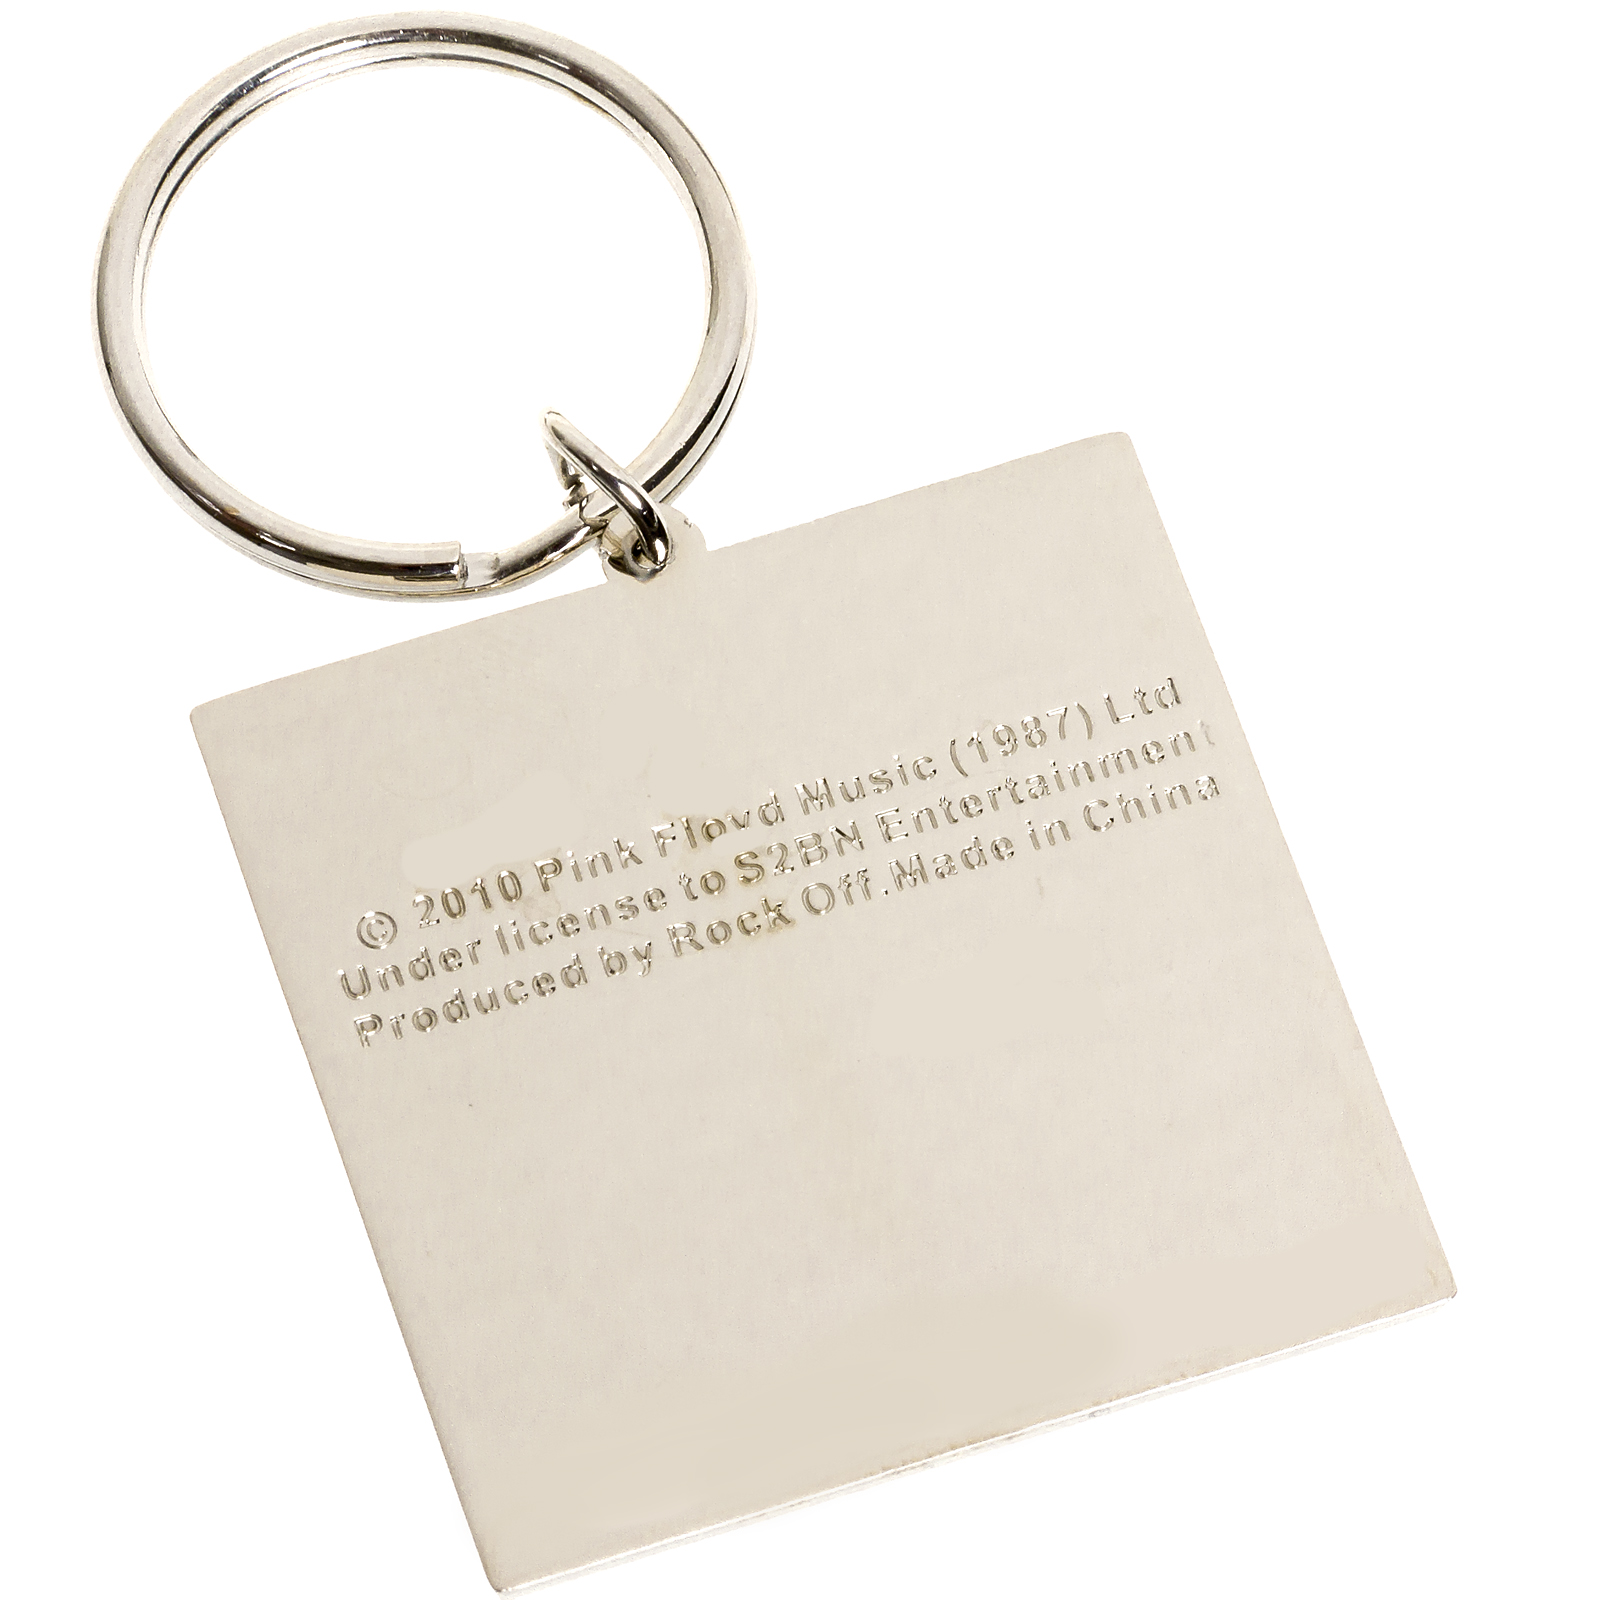 pink floyd band metal key chain ring ebay. Black Bedroom Furniture Sets. Home Design Ideas